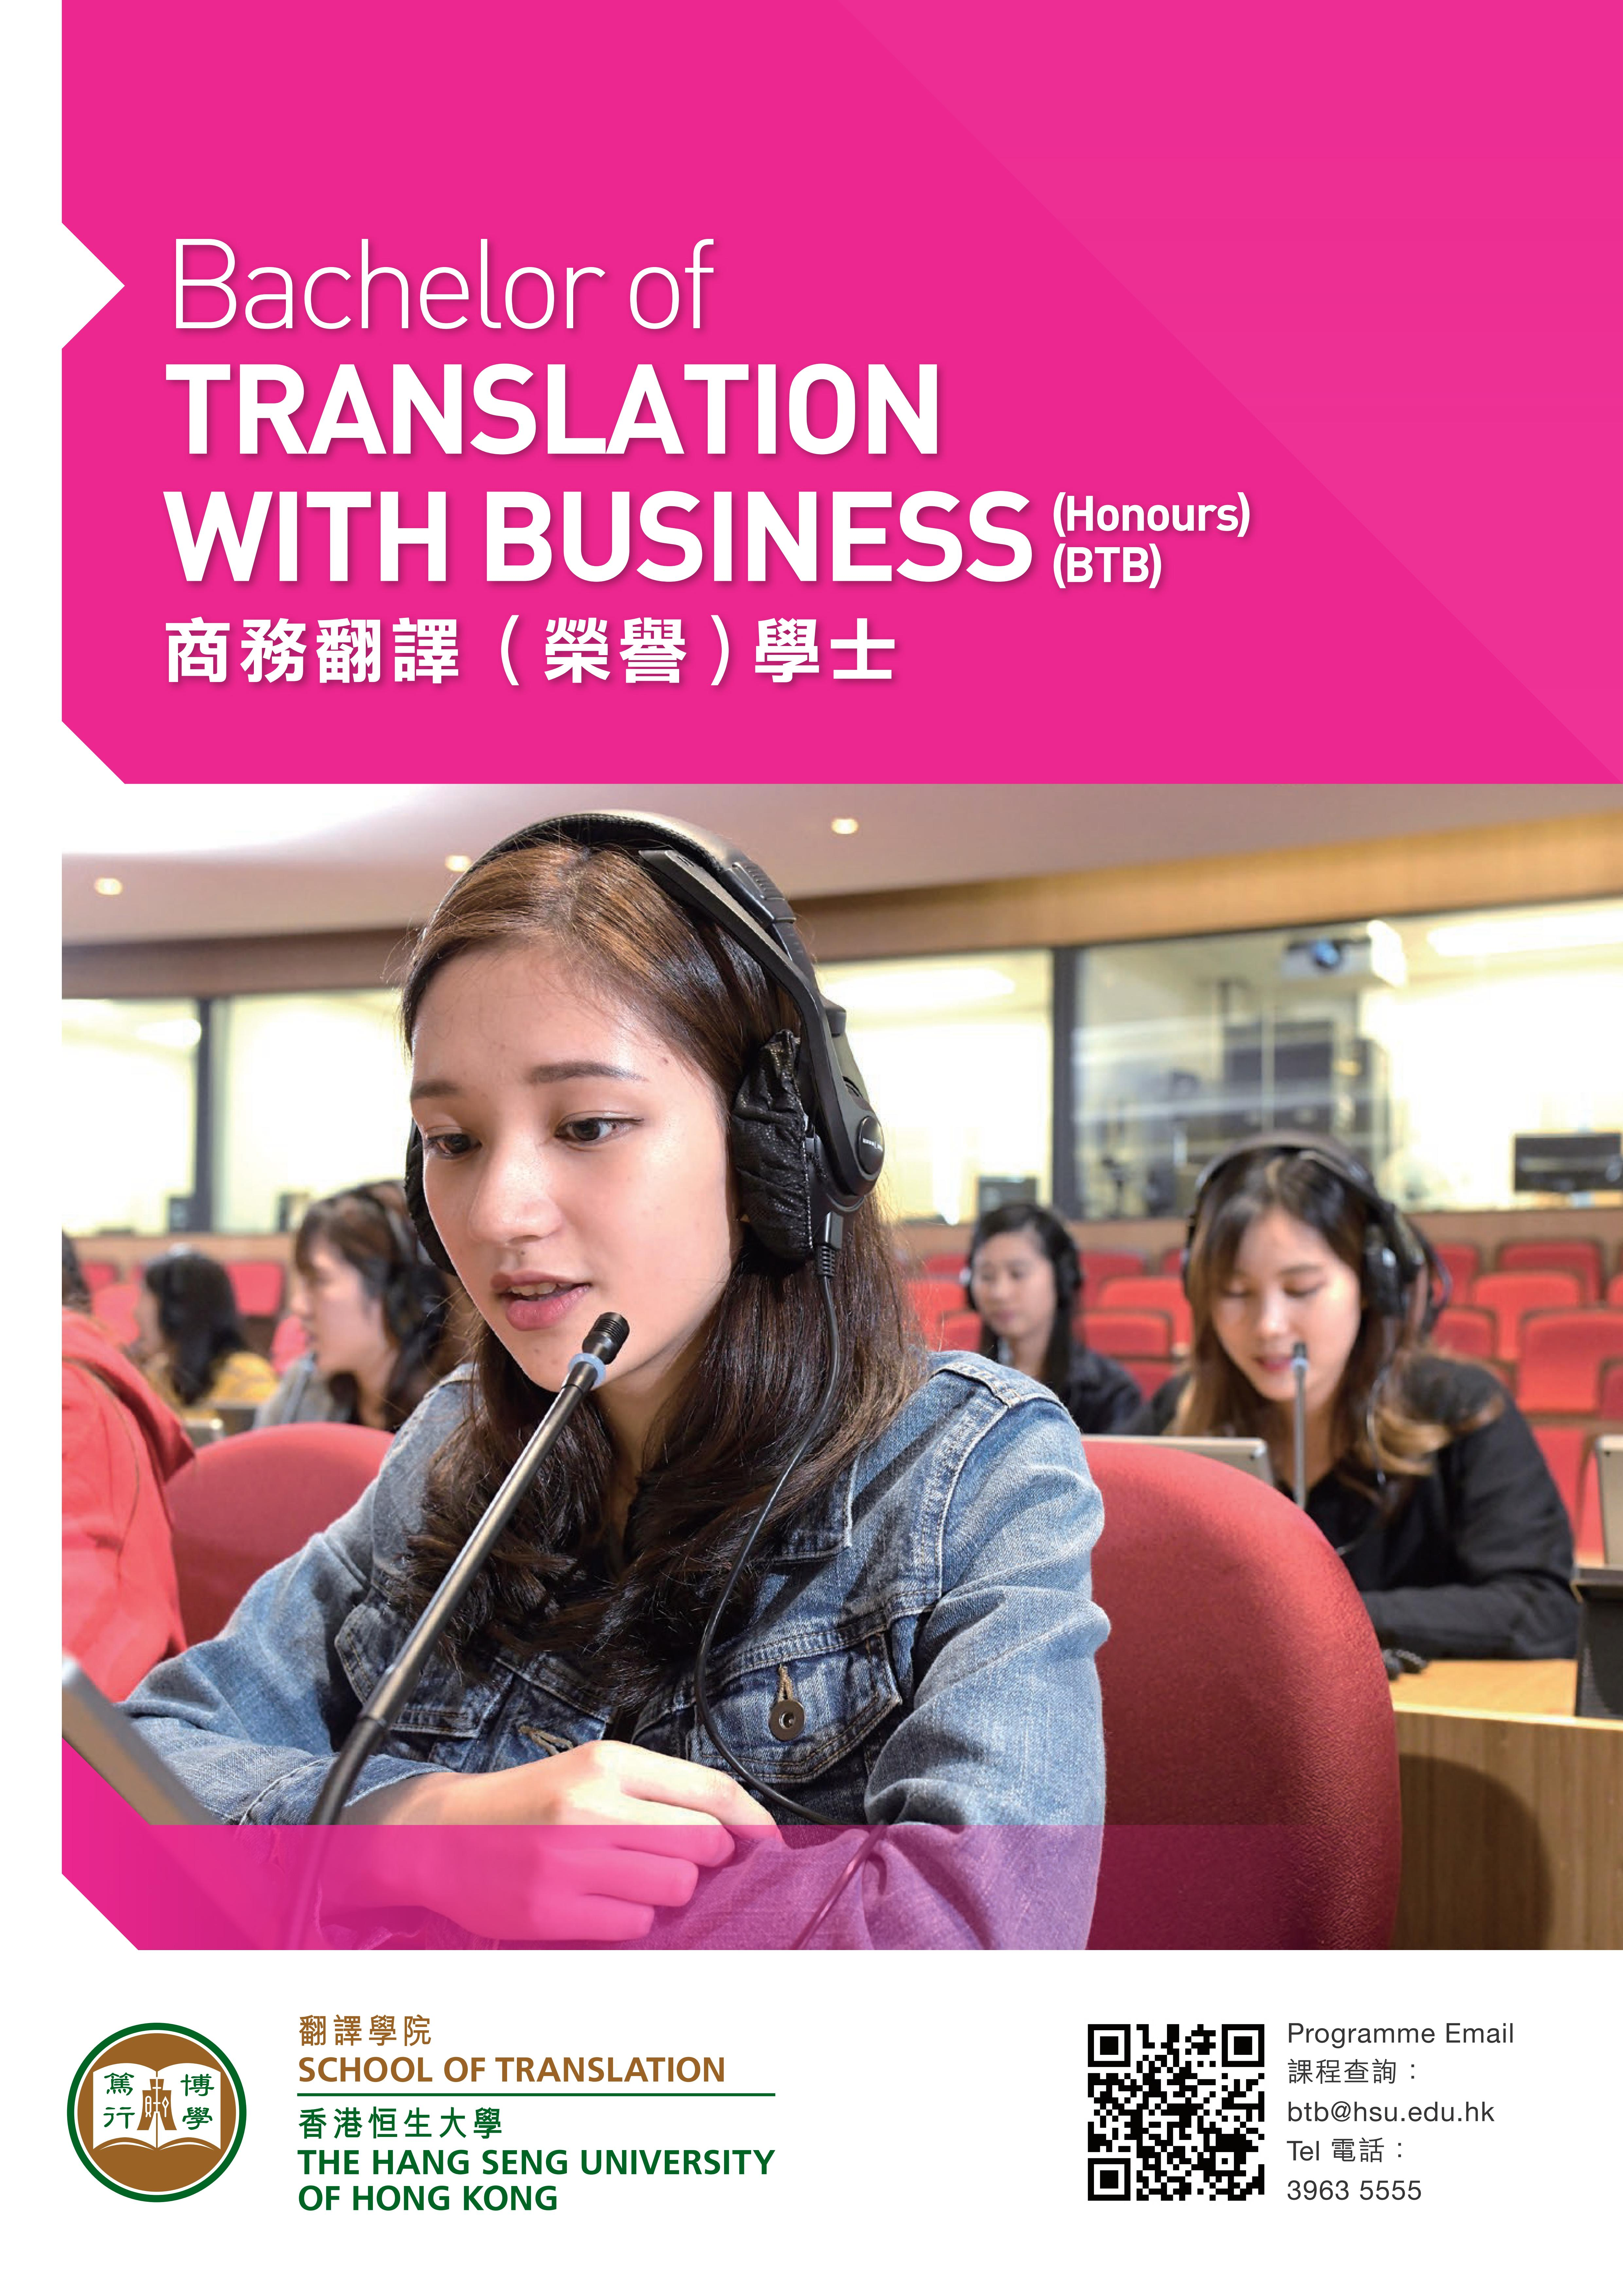 Bachelor of Translation with Business (Honours) BTB_2019